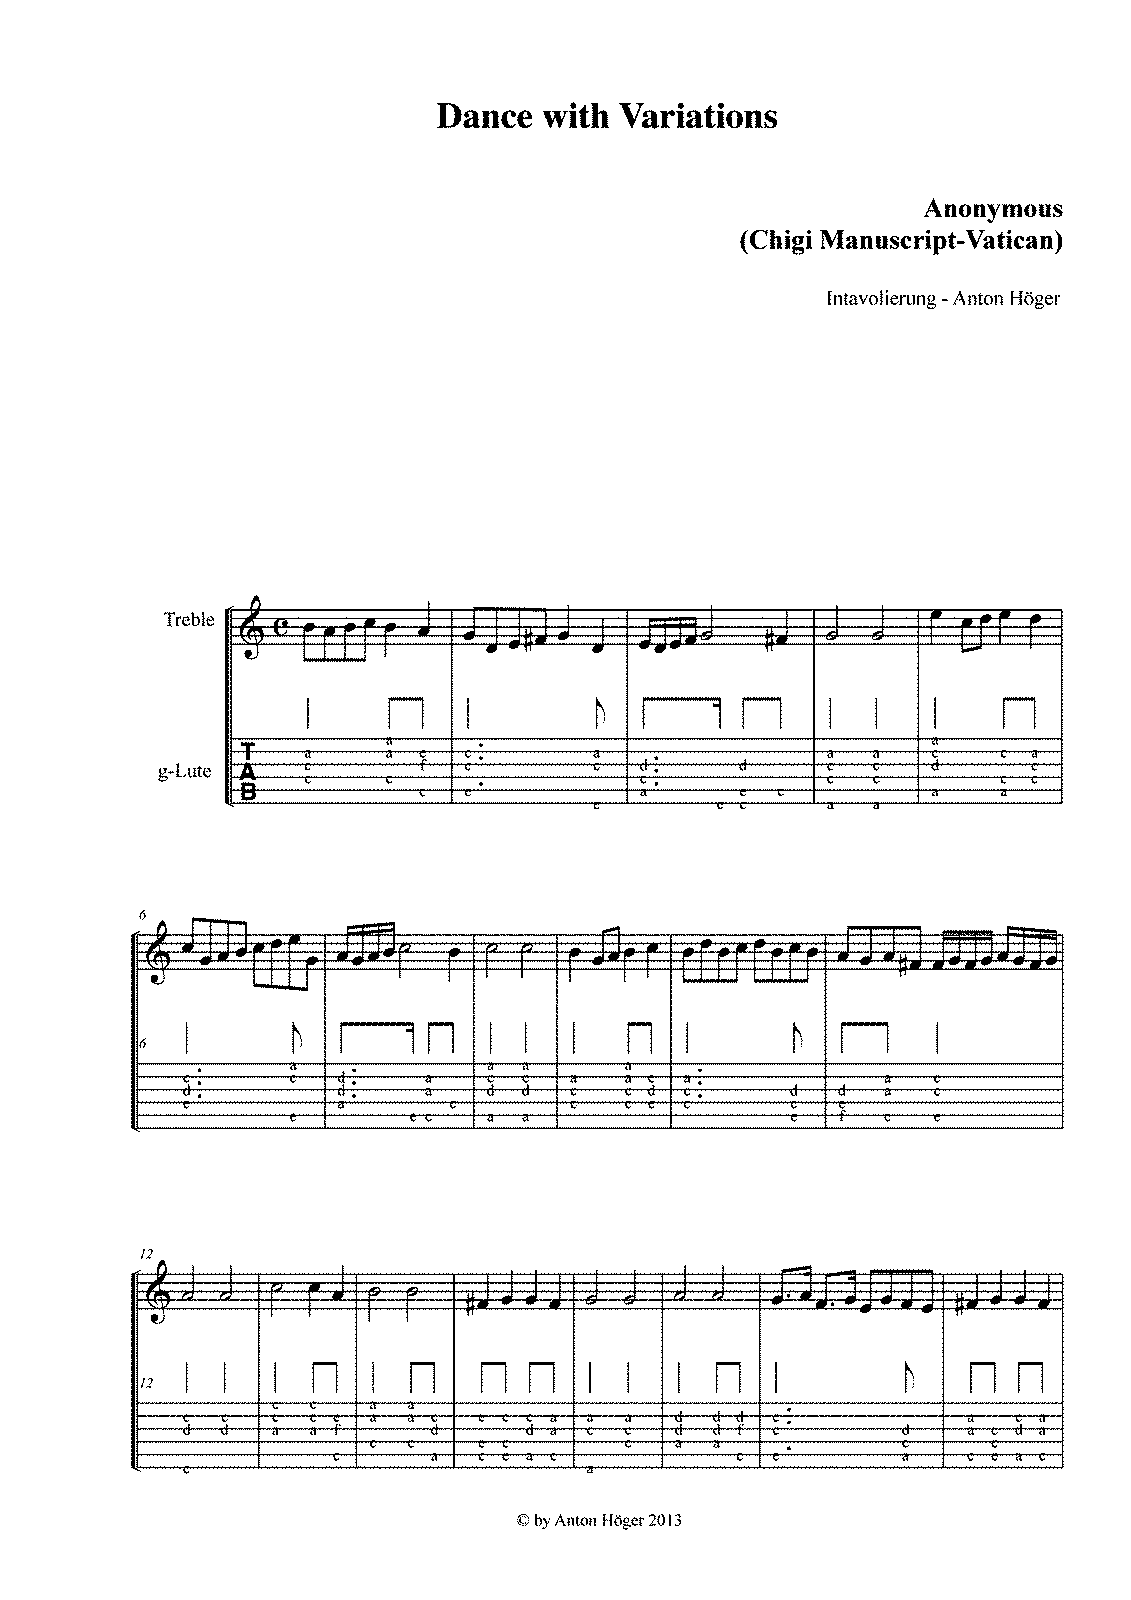 PMLP447588-Anonymous - Dance with Variations (Fin Tab).pdf